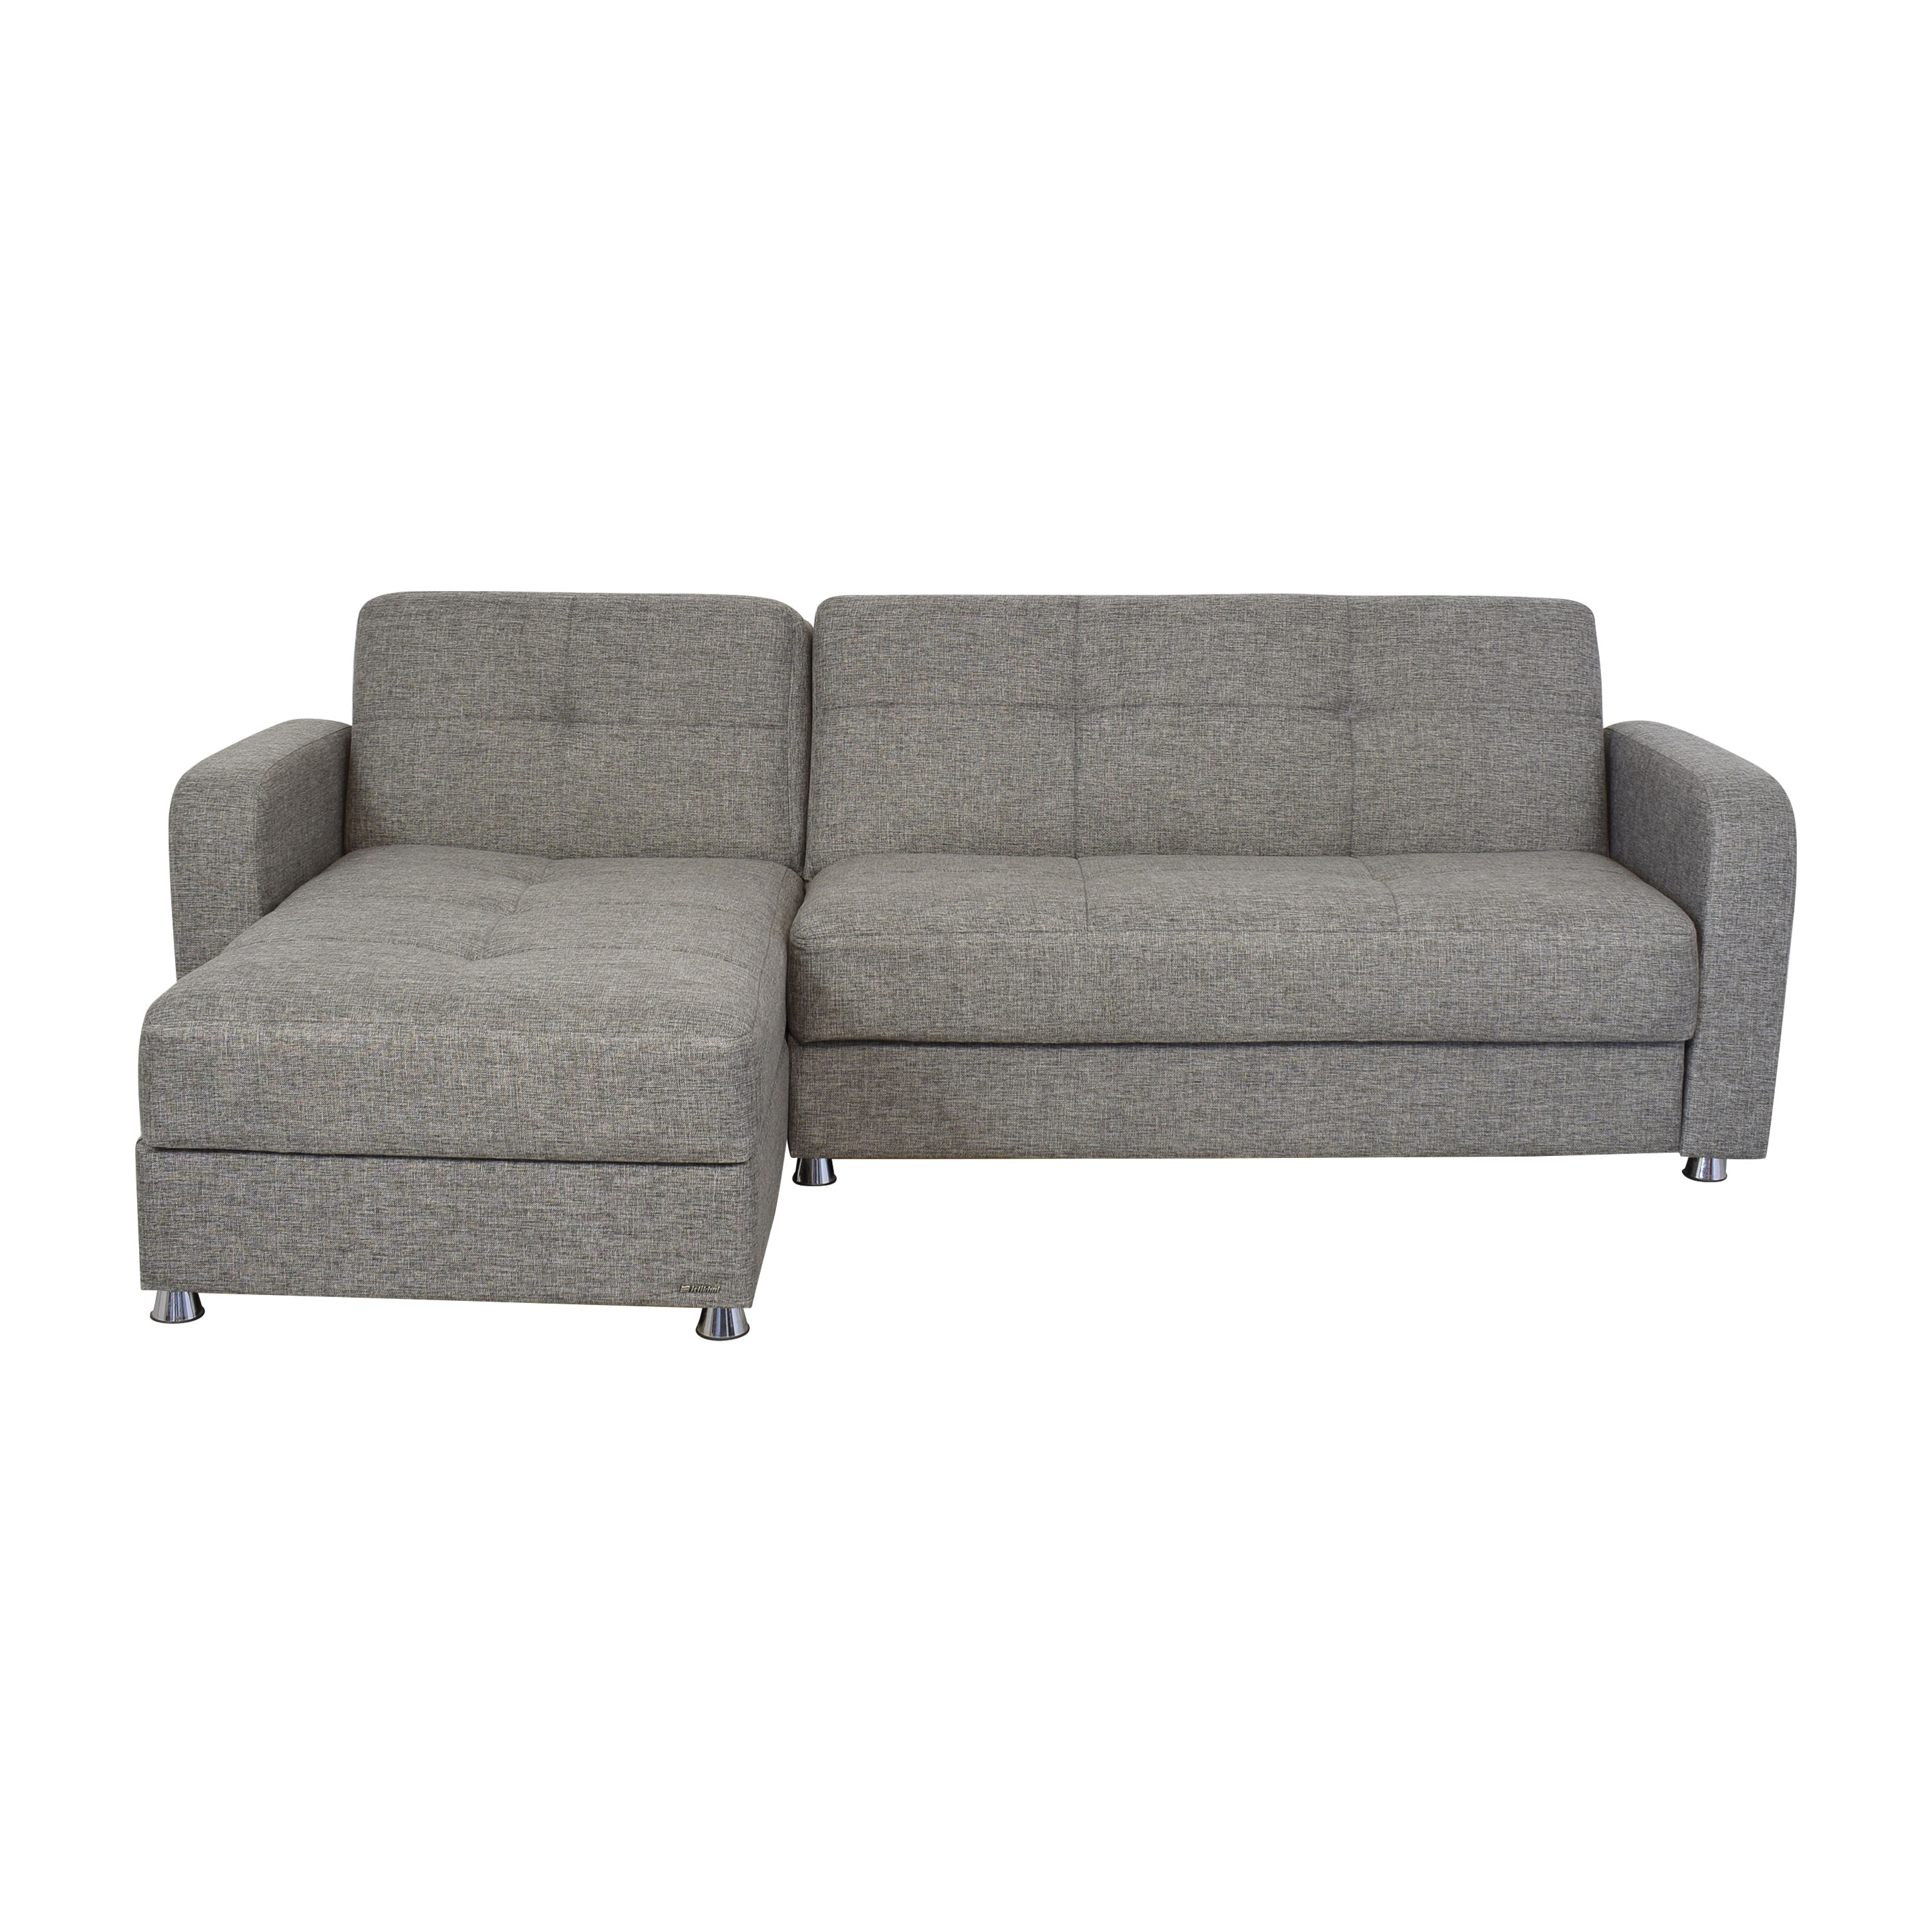 buy Istikbal Istikbal Vision Diego Sectional Sofa and Ottoman online